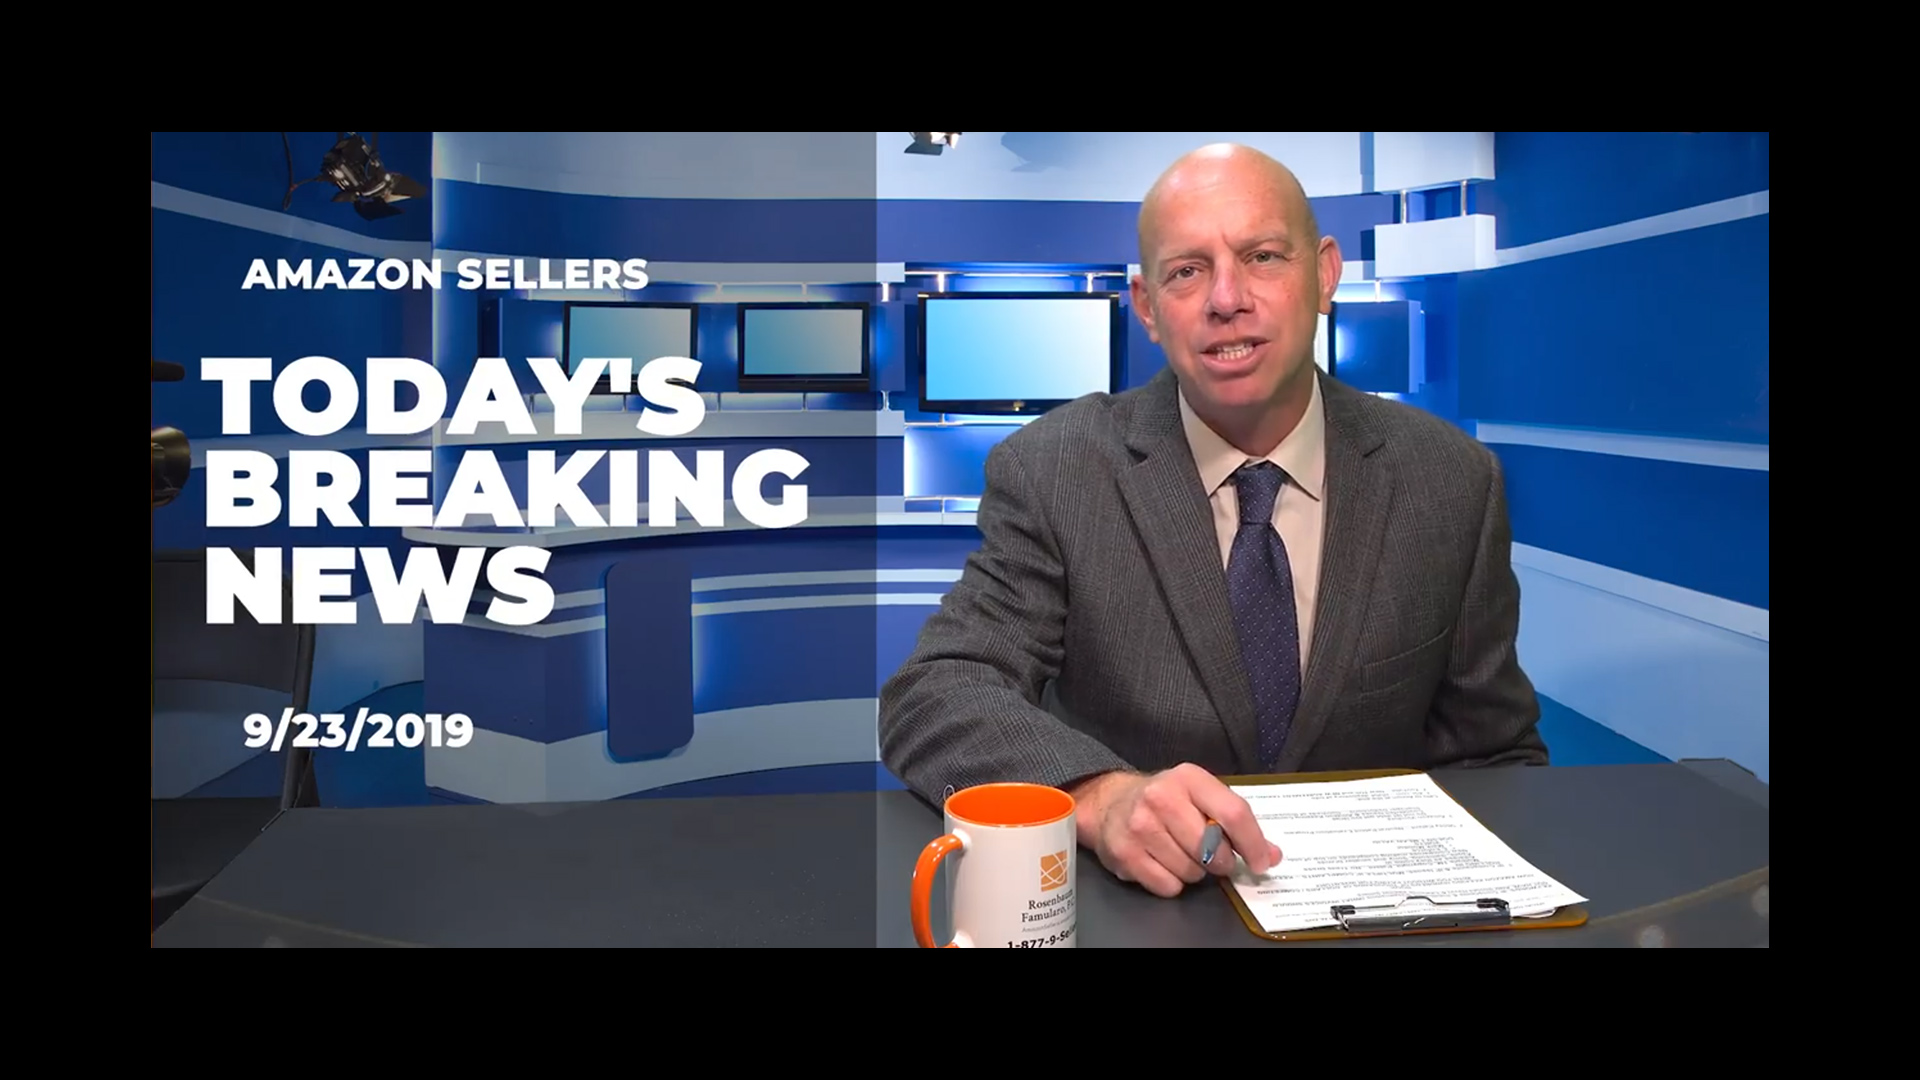 Amazon Sellers' News 9-23-19